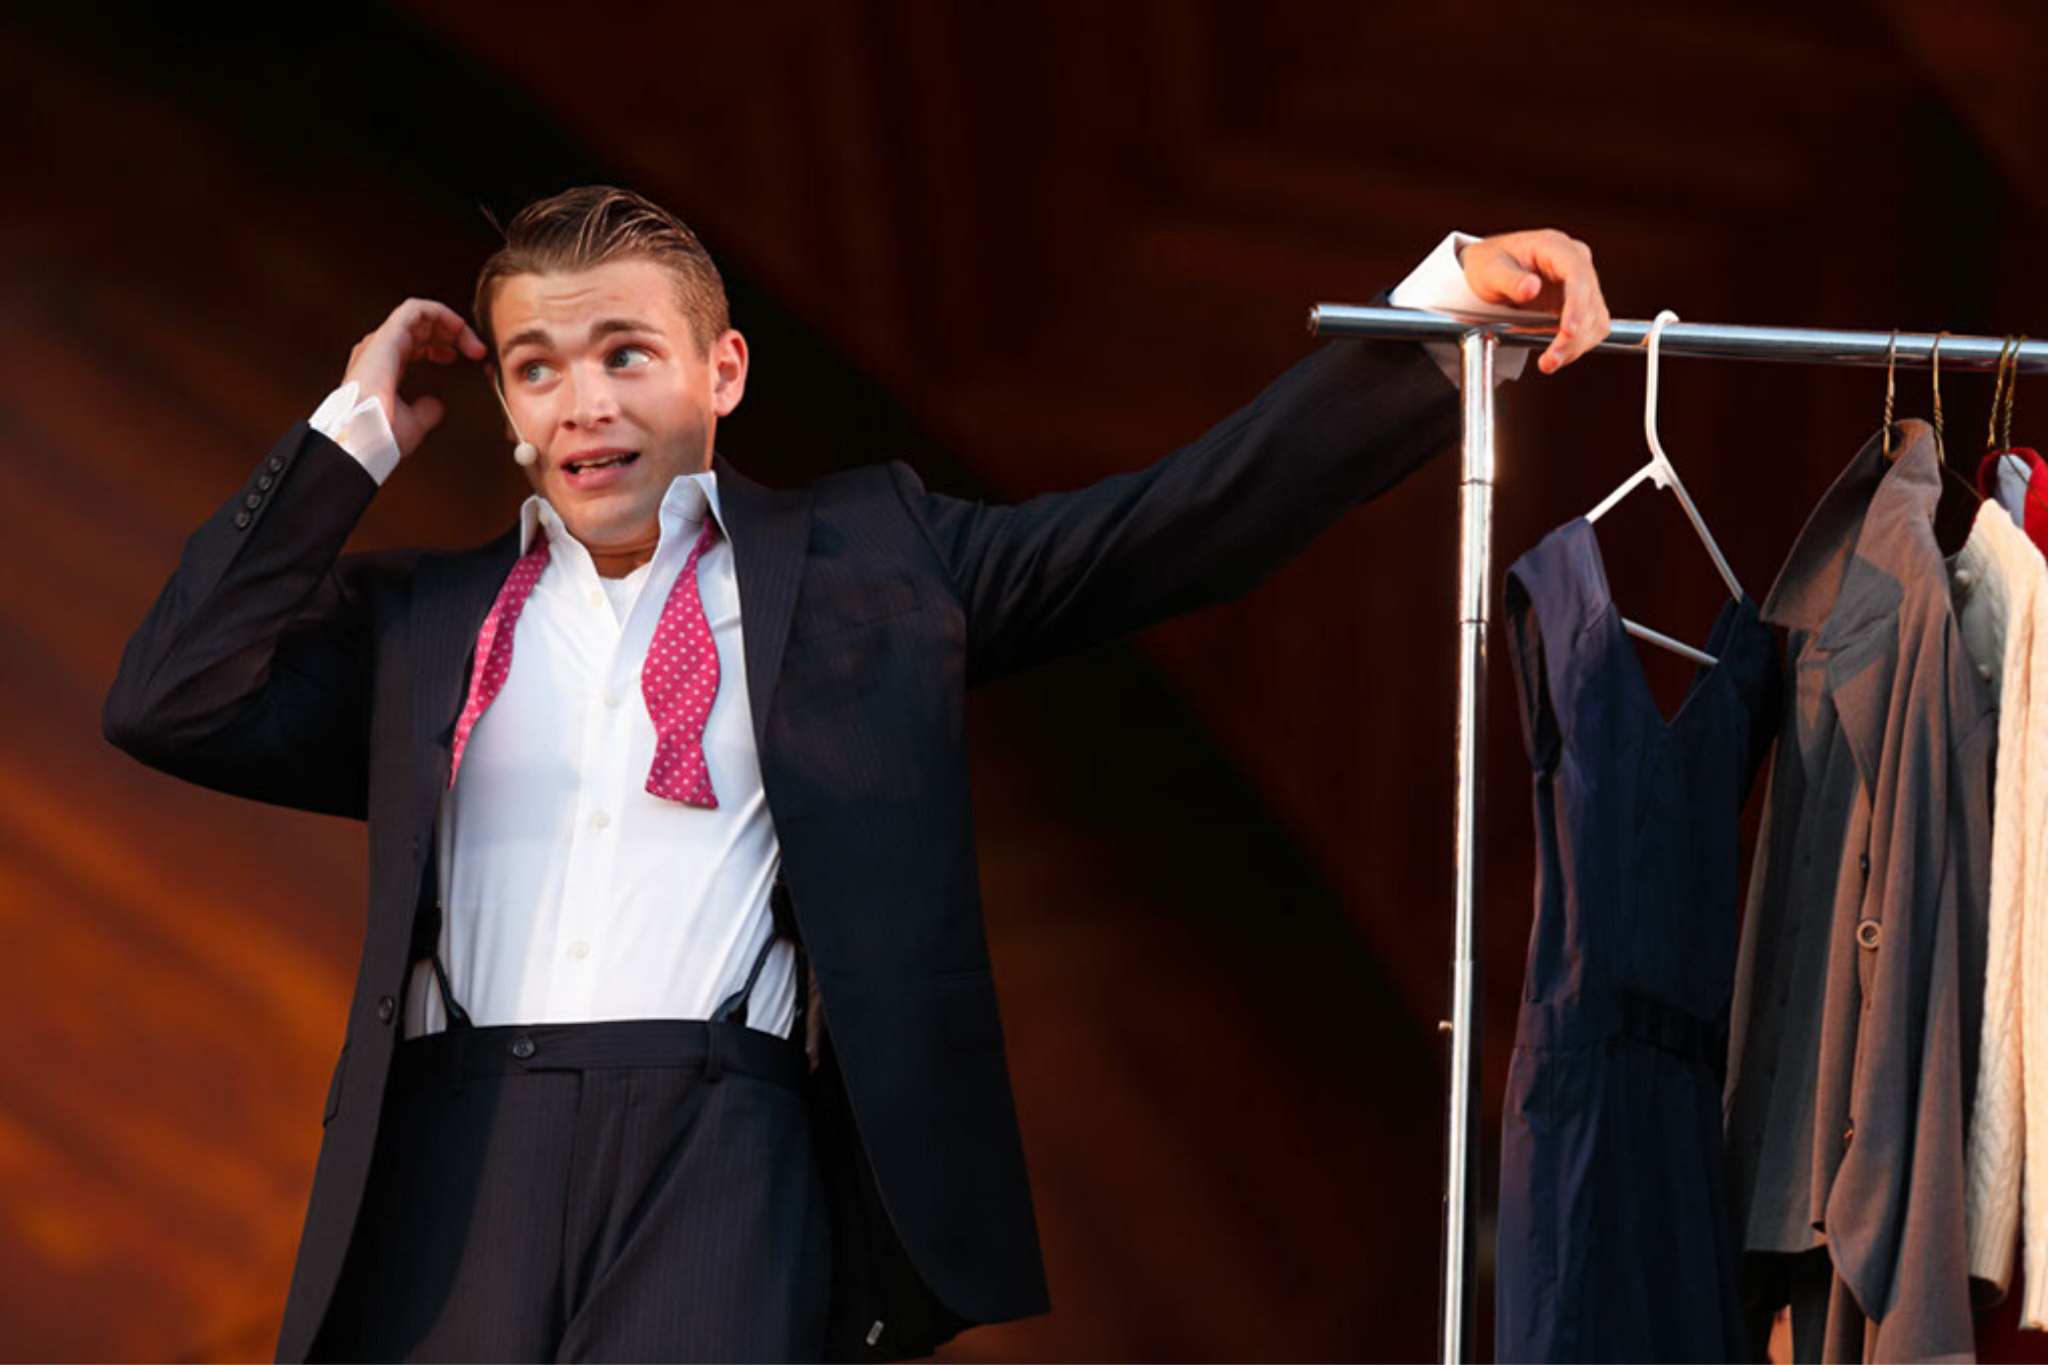 Andrew Burnap (Bill Calhoun/Lucentio) in Kiss Me Kate, CSC and Landmarks Orchestra 2013. Photo by Michael Dwyer.